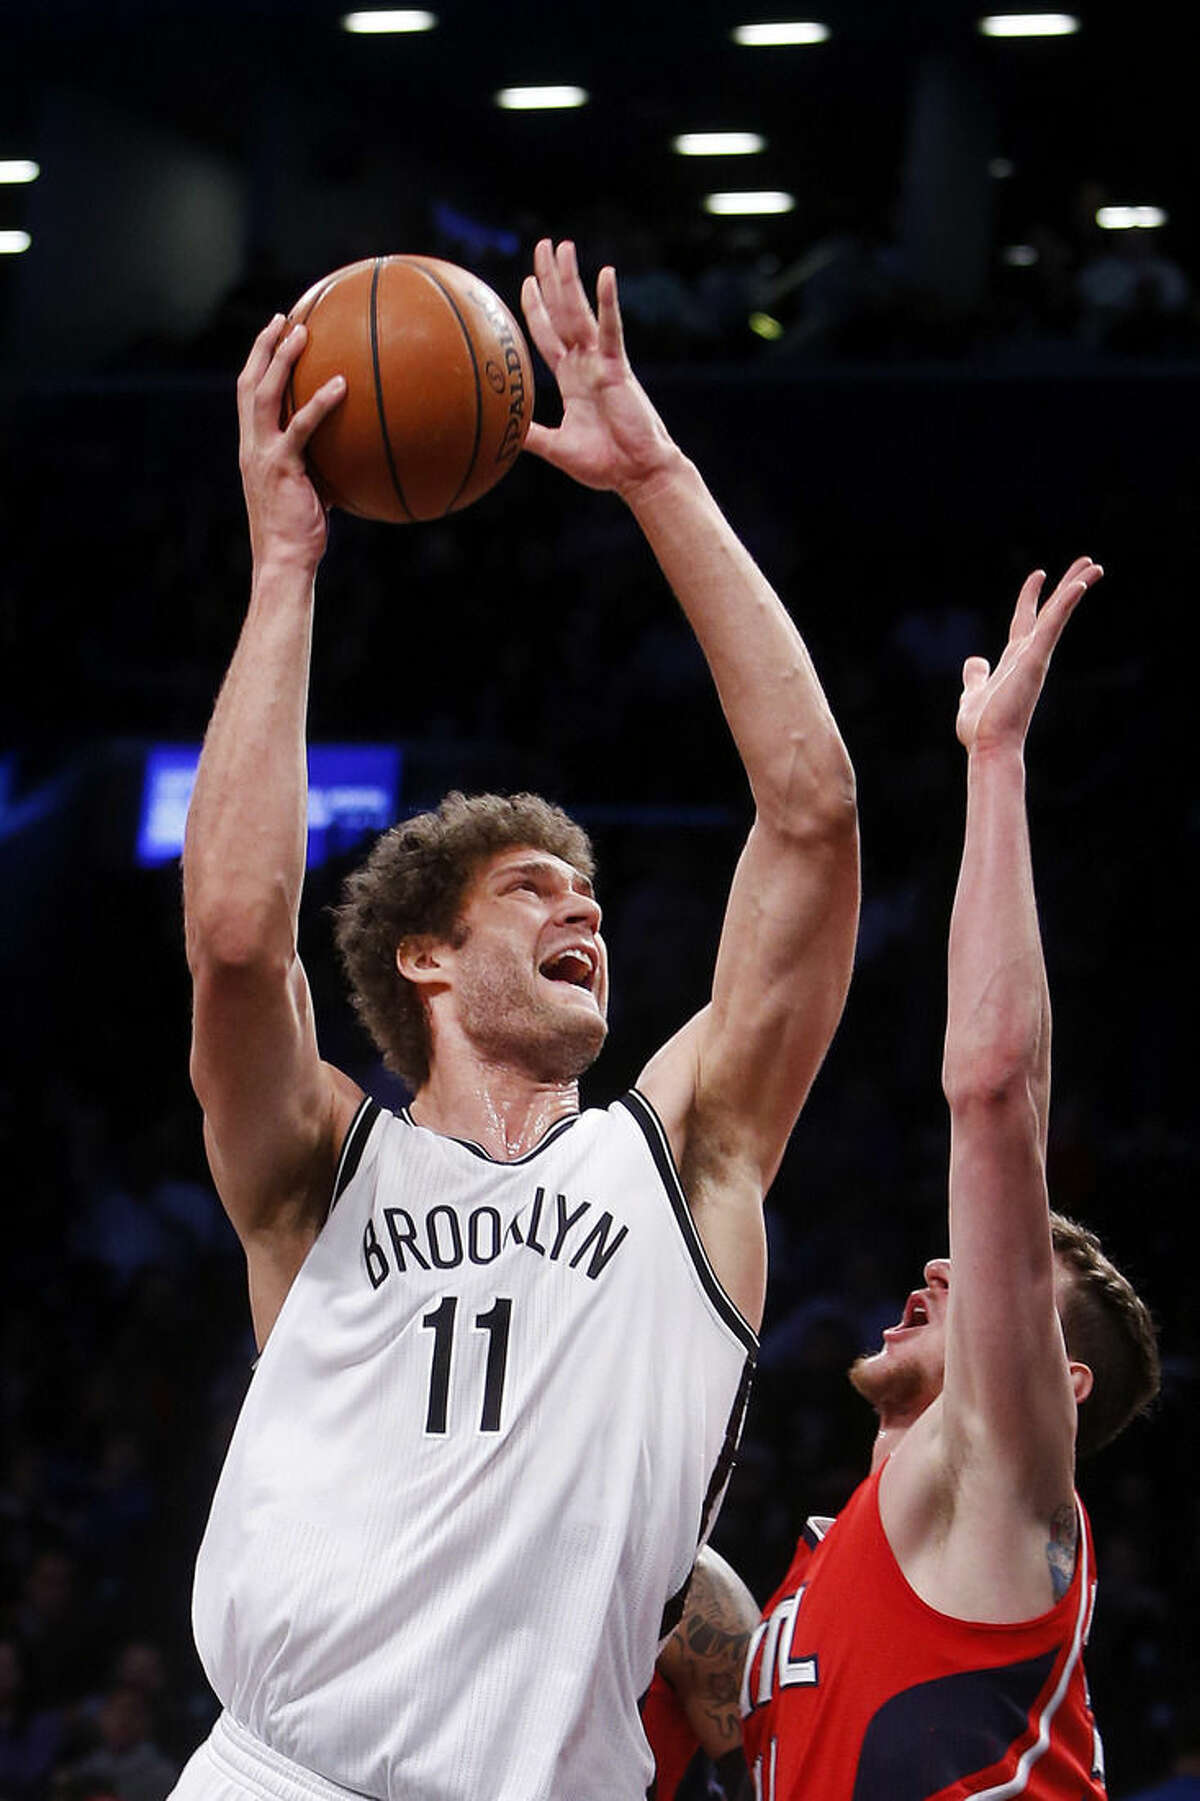 Brooklyn Nets' Brook Lopez (11) goes to the basket against Atlanta Hawks' Mike Muscala during the first half of an NBA basketball game Wednesday, April 8, 2015, in New York. (AP Photo/Jason DeCrow)